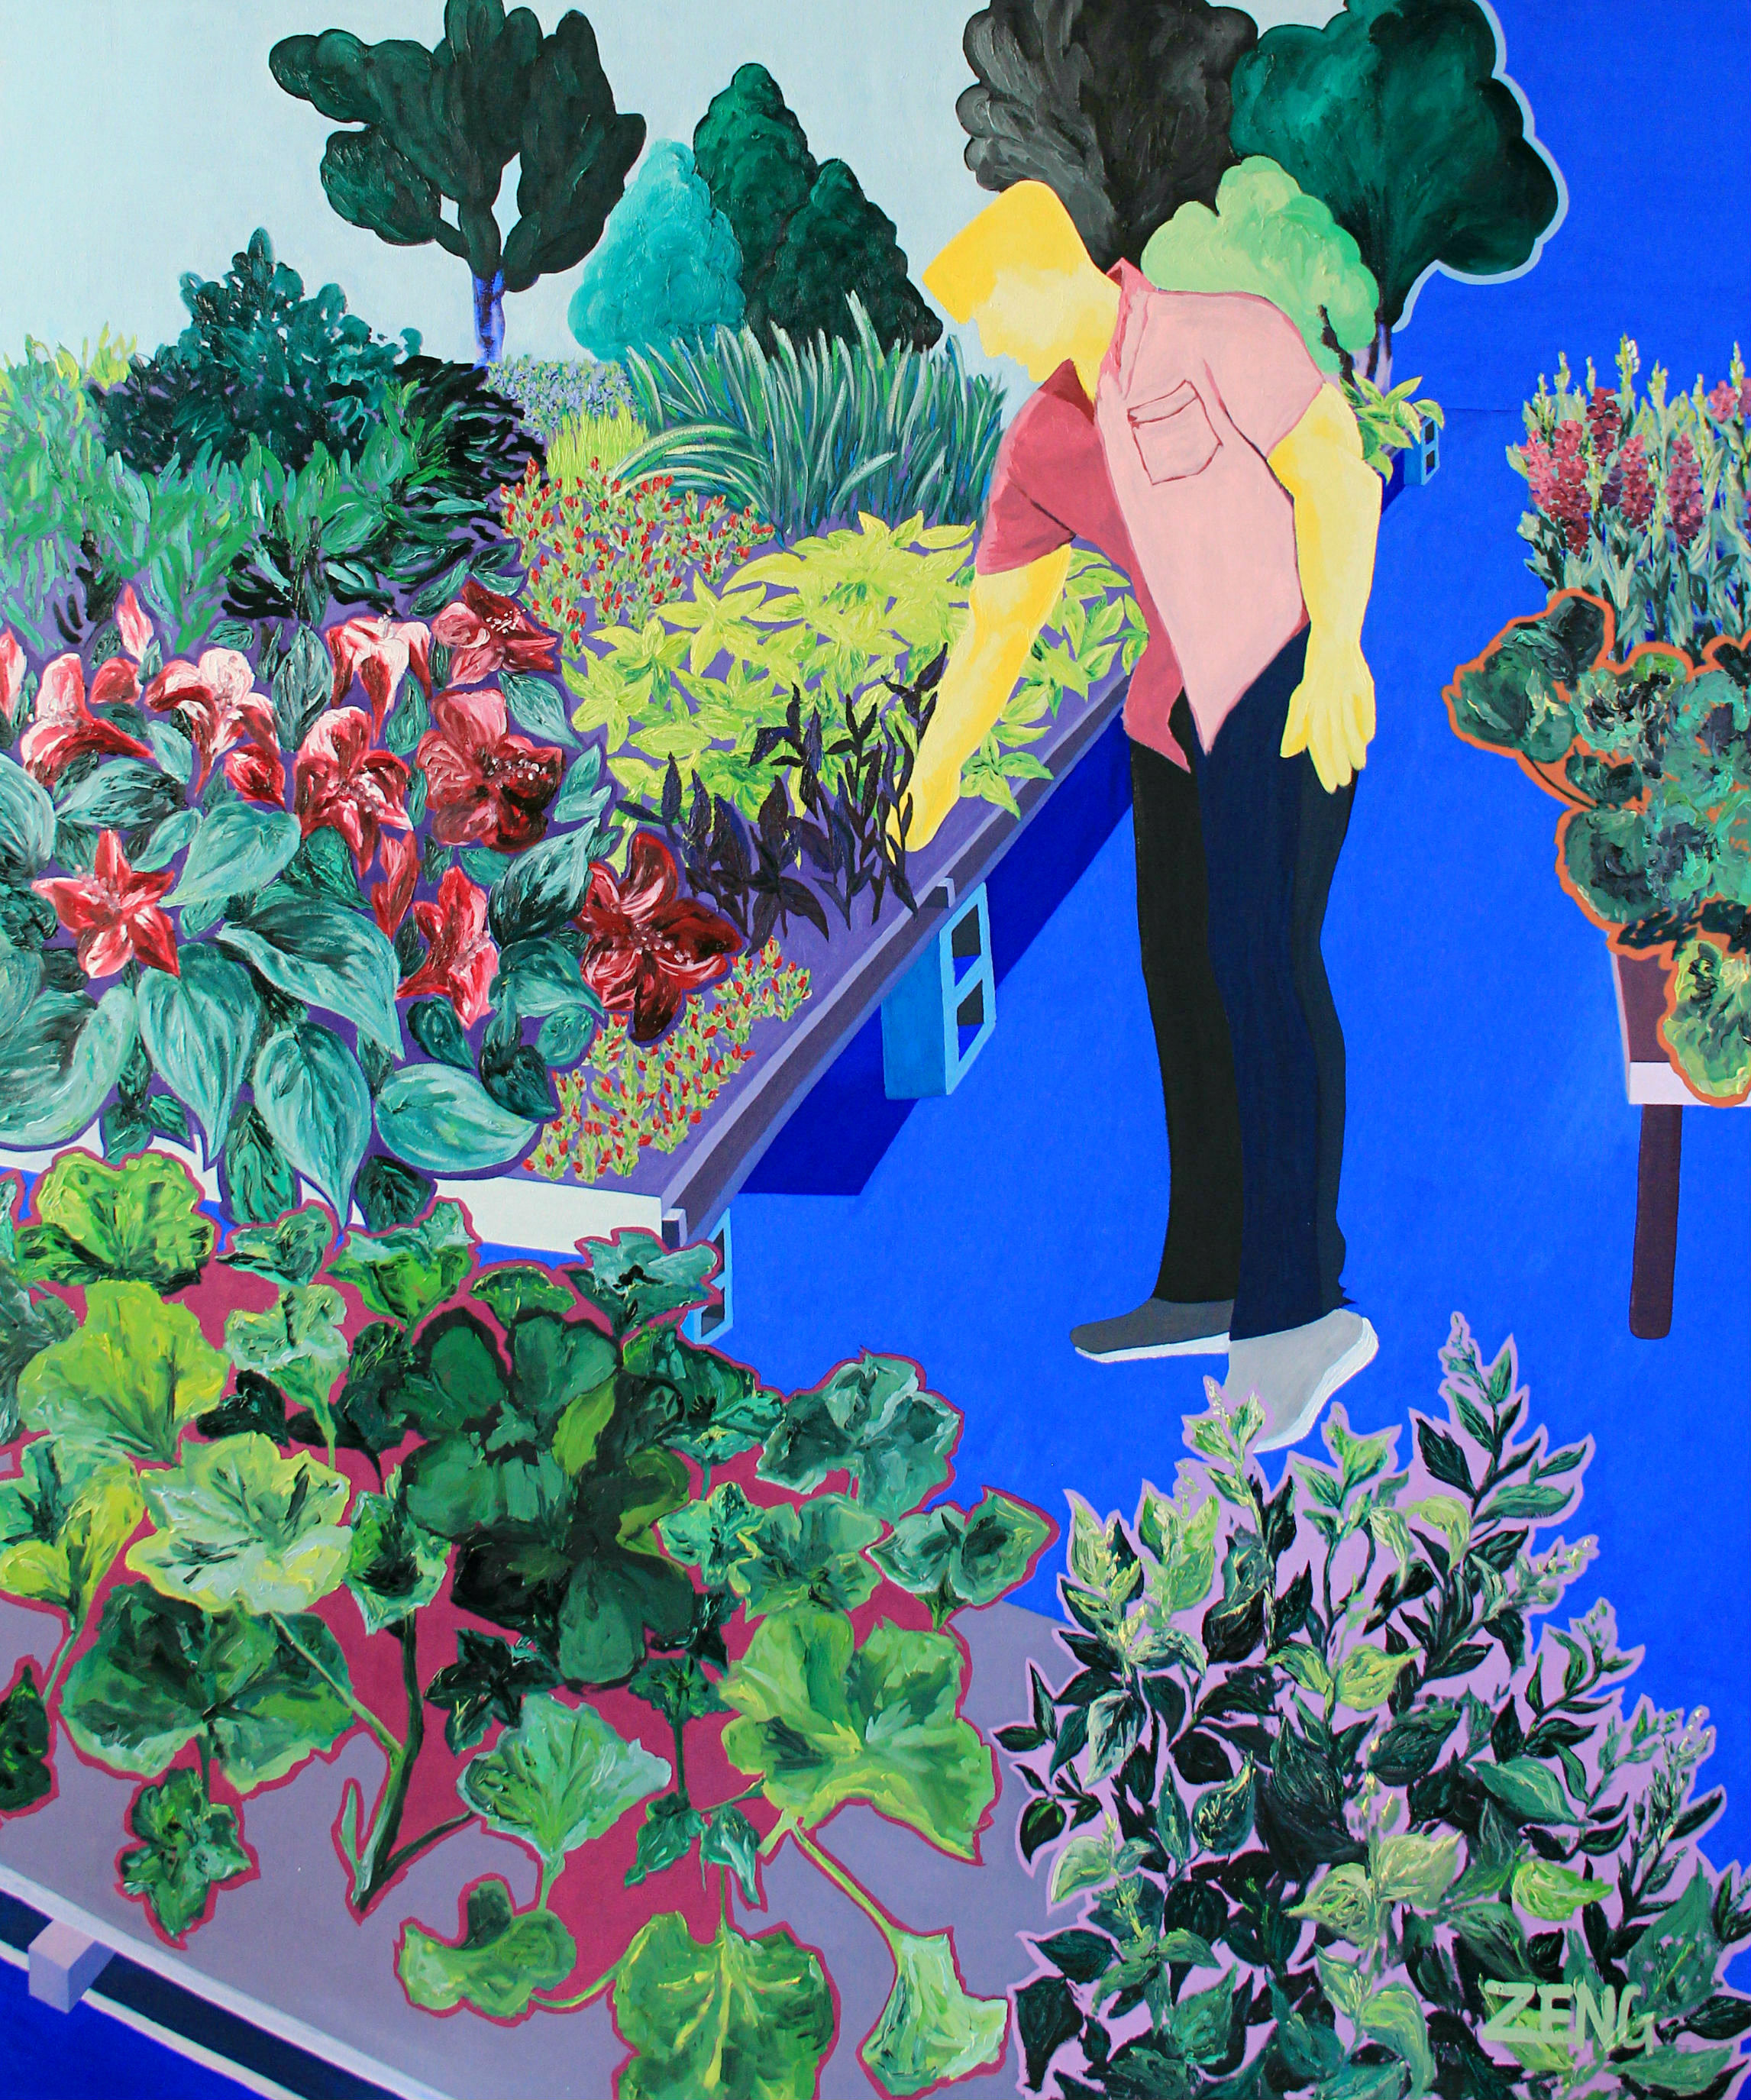 I Shouldn't Be Here - 72 x 60 in., oil on stretched canvas2018This work captures a candid moment observed by the artist of her husband contemplating choices at a plant nursery for their garden. In his gentle touch, the reality of what strength and masculinity can look like becomes vividly clear. The scene exists in opposition not only to strict ideas of gender but also to the figure's own personal struggle with his ongoing existence as a cancer survivor. The marital relationship between the artist and her husband is shown through the notion of shared assets ‒ the figure's yellow skin is the color typically cast onto the artist's Asian identity.